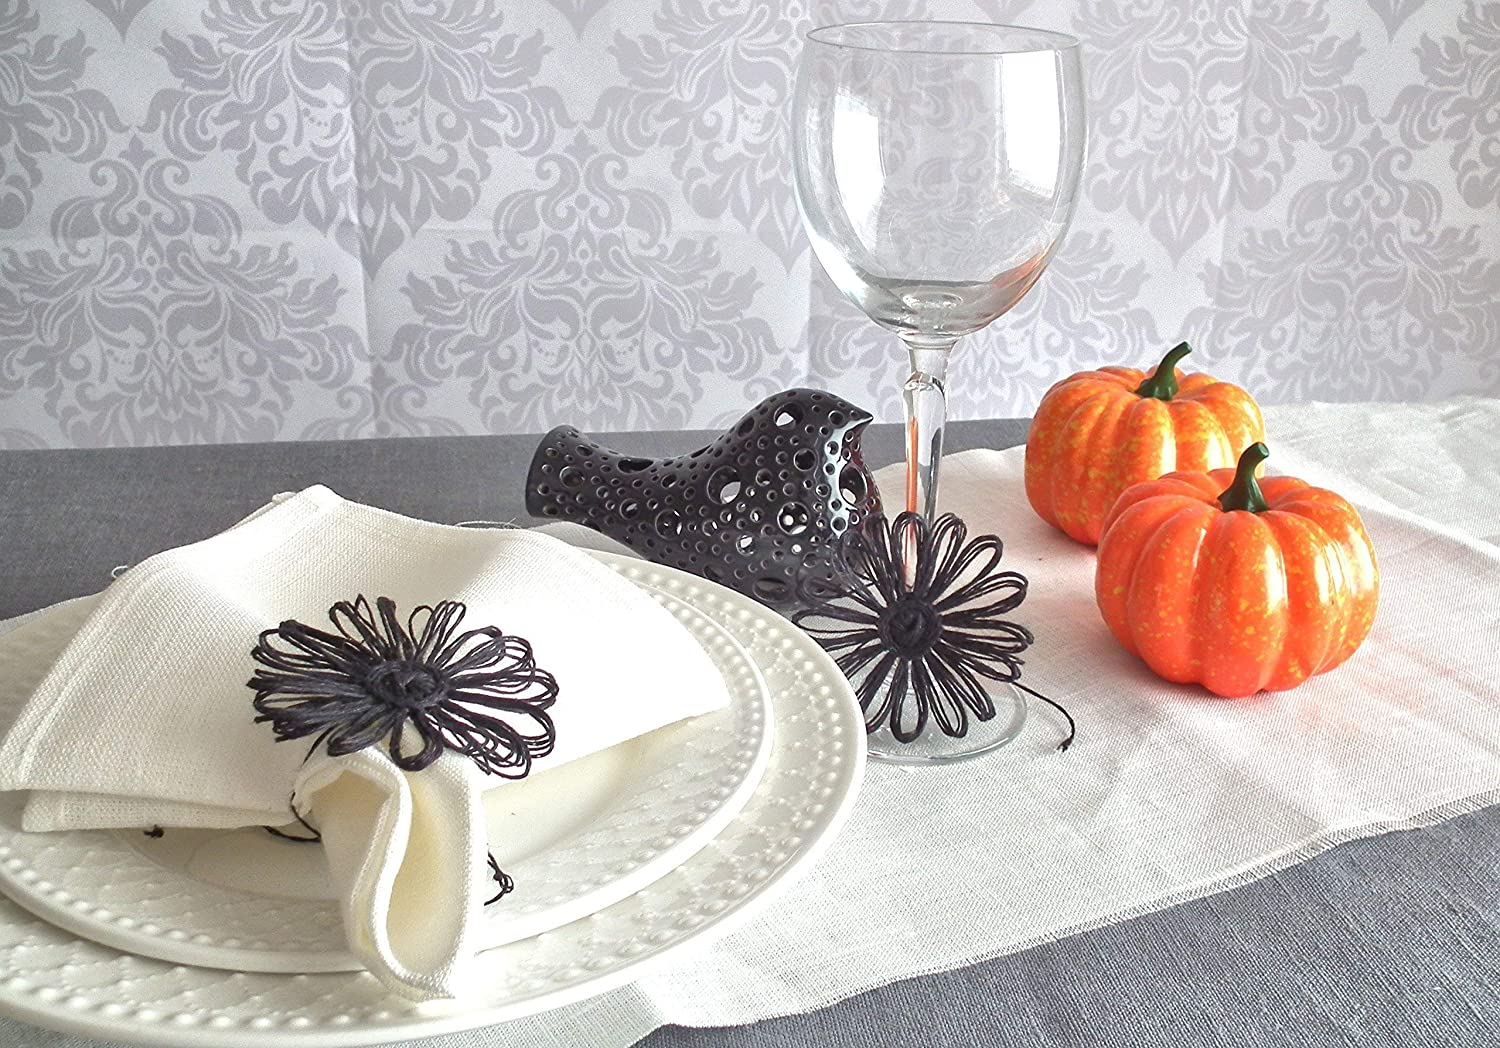 Orange Linen Flower For Tables Decor Handmade Black Napkin Rings for Halloween Set of 10, 12, 20, 30 pcs